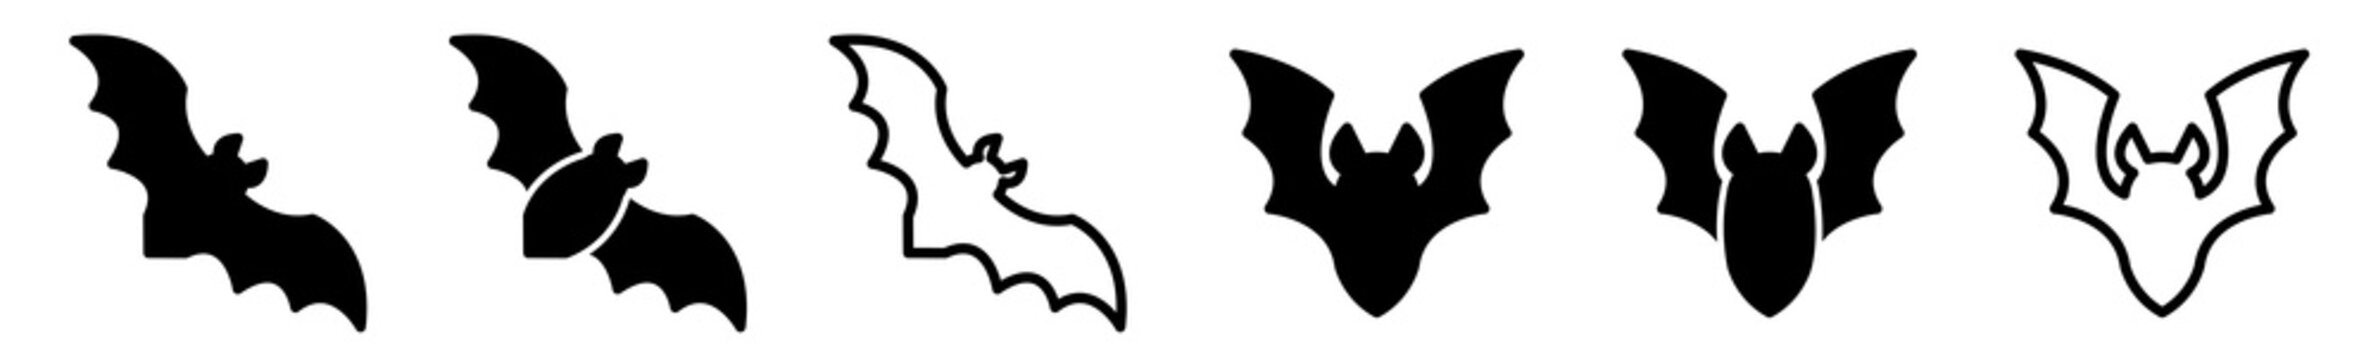 Bat Icon Black | Flying Bats Illustration | Halloween Symbol | Vampire Logo | Scary Sign | Isolated | Variations